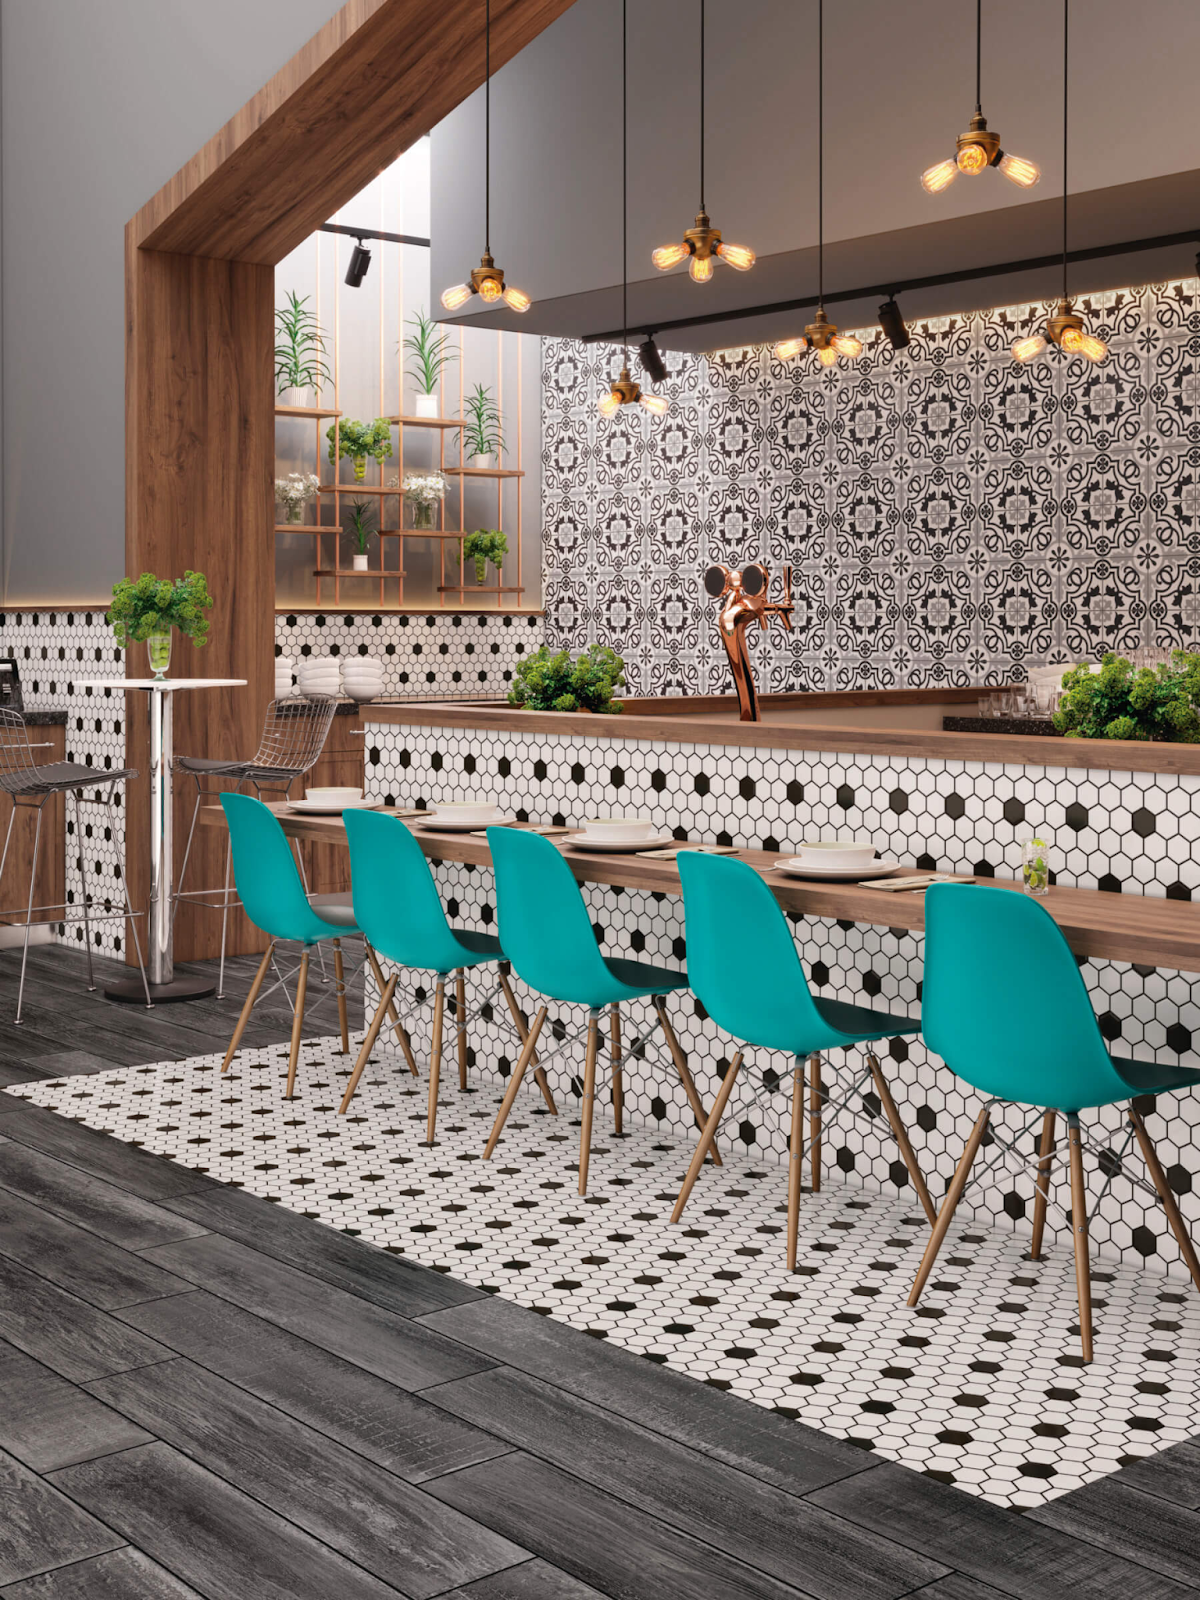 Retro black and white hexagon mosaic tile bar front and flooring